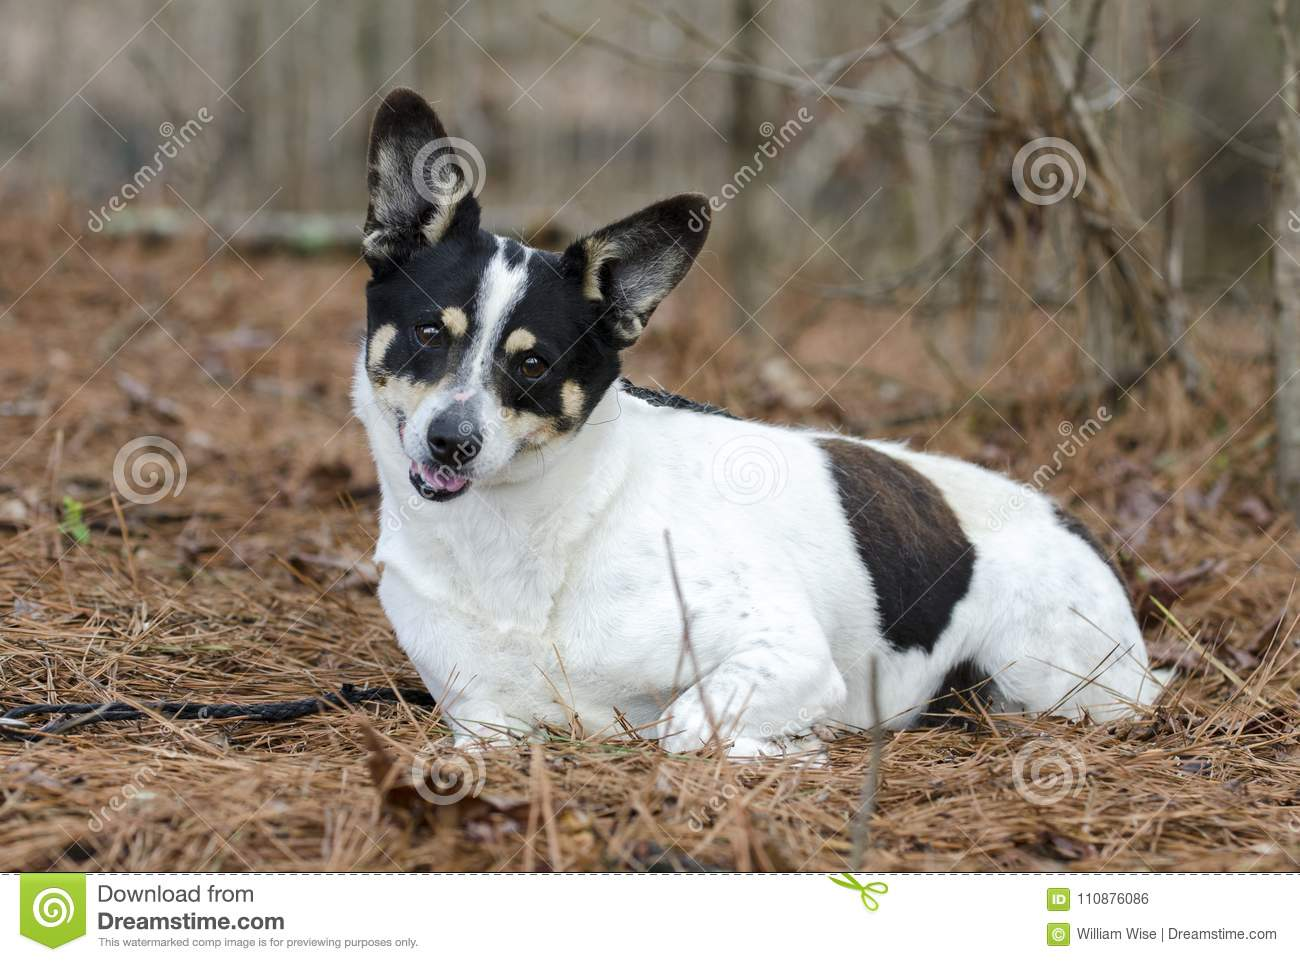 Jack Russell Terrier cattledog mixed breed dog laying in pine needle forest